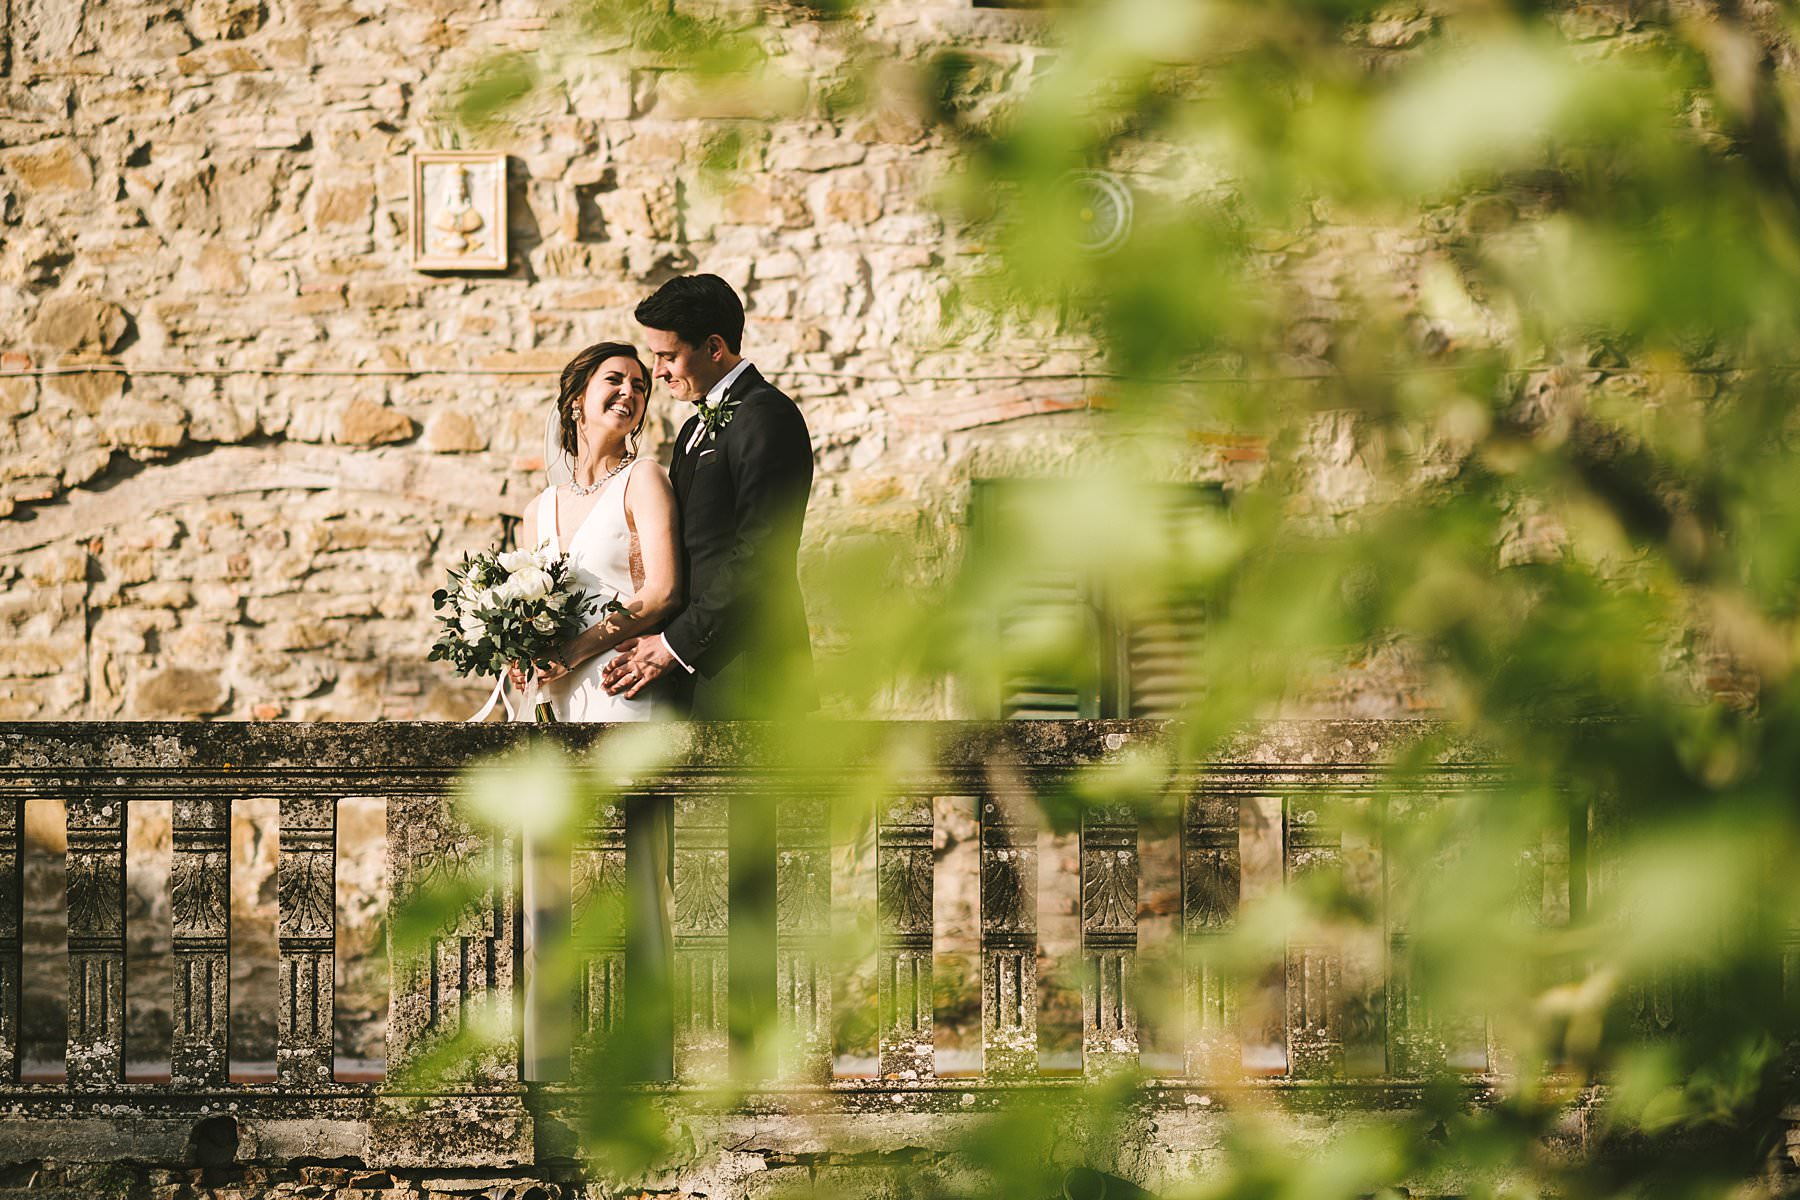 Heartfelt small wedding in the countryside of Tuscany. Beautiful and elegant bride and groom wedding portrait at Palazzo Vanneschi in Bucine